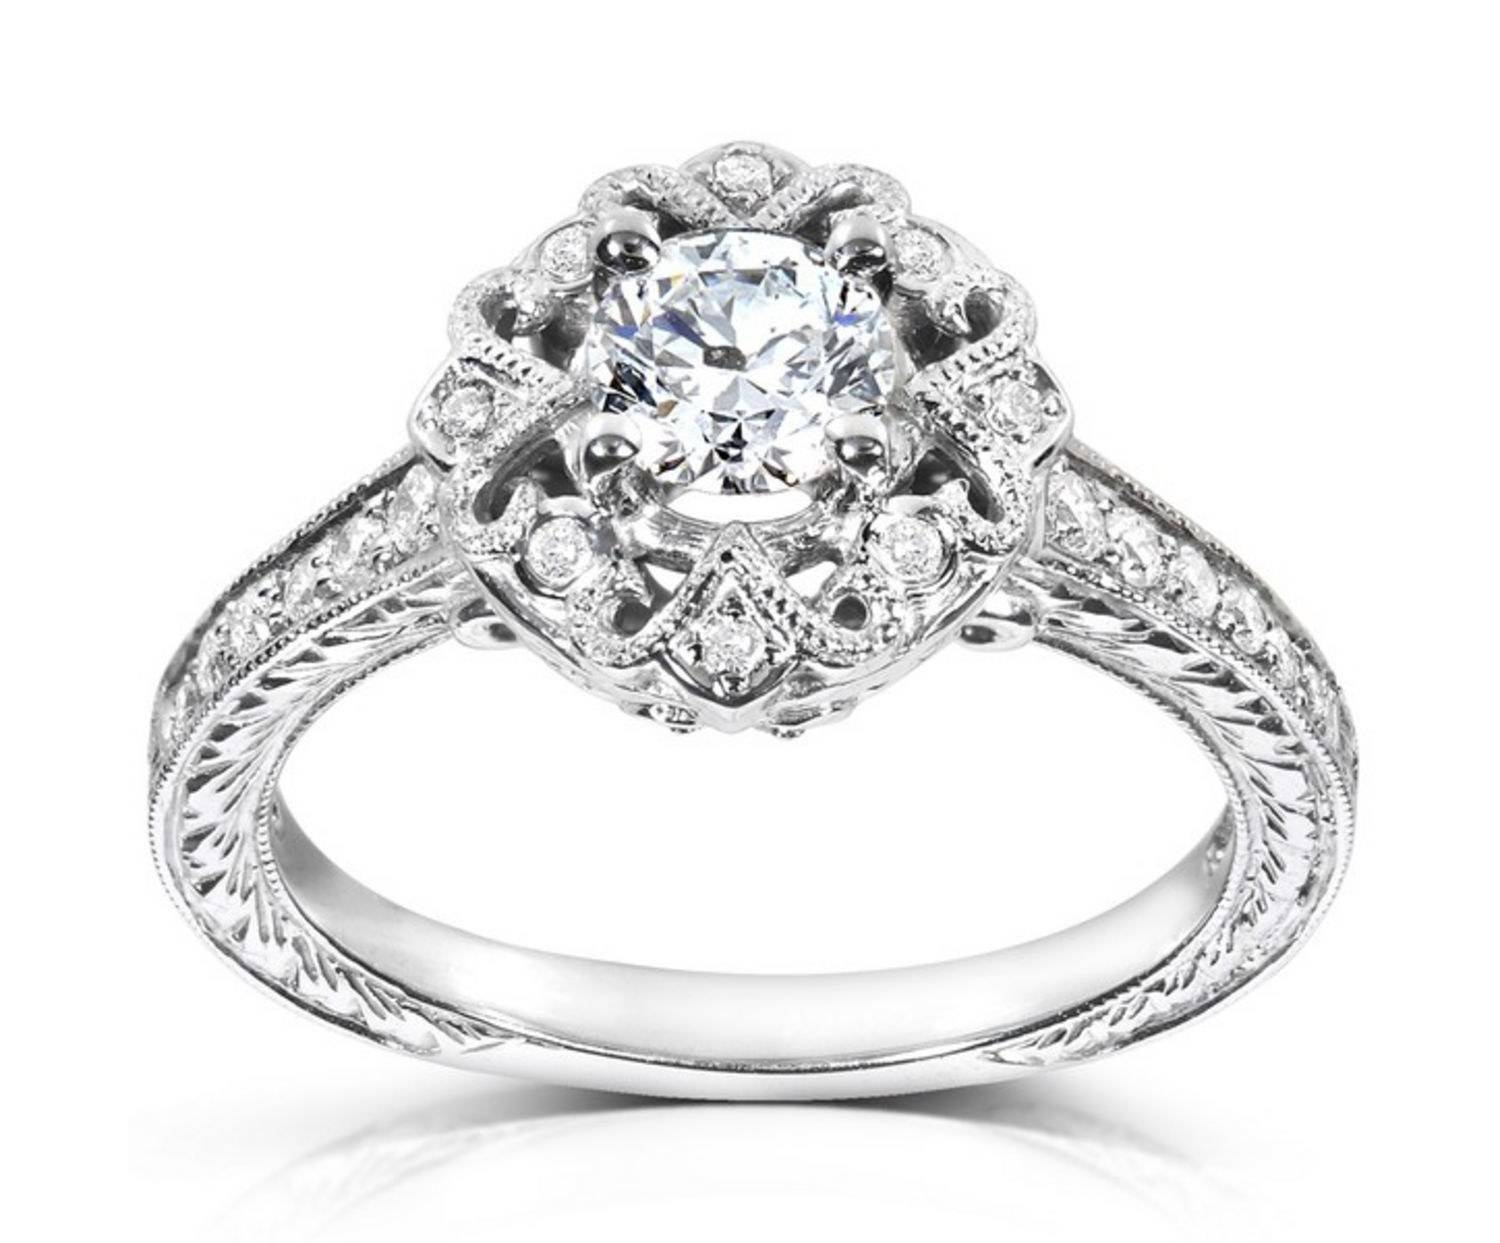 Affordable Engagement Rings Under $1,000 | Glamour Within Cheap Engagement Rings For Women Under 300 (Gallery 11 of 15)